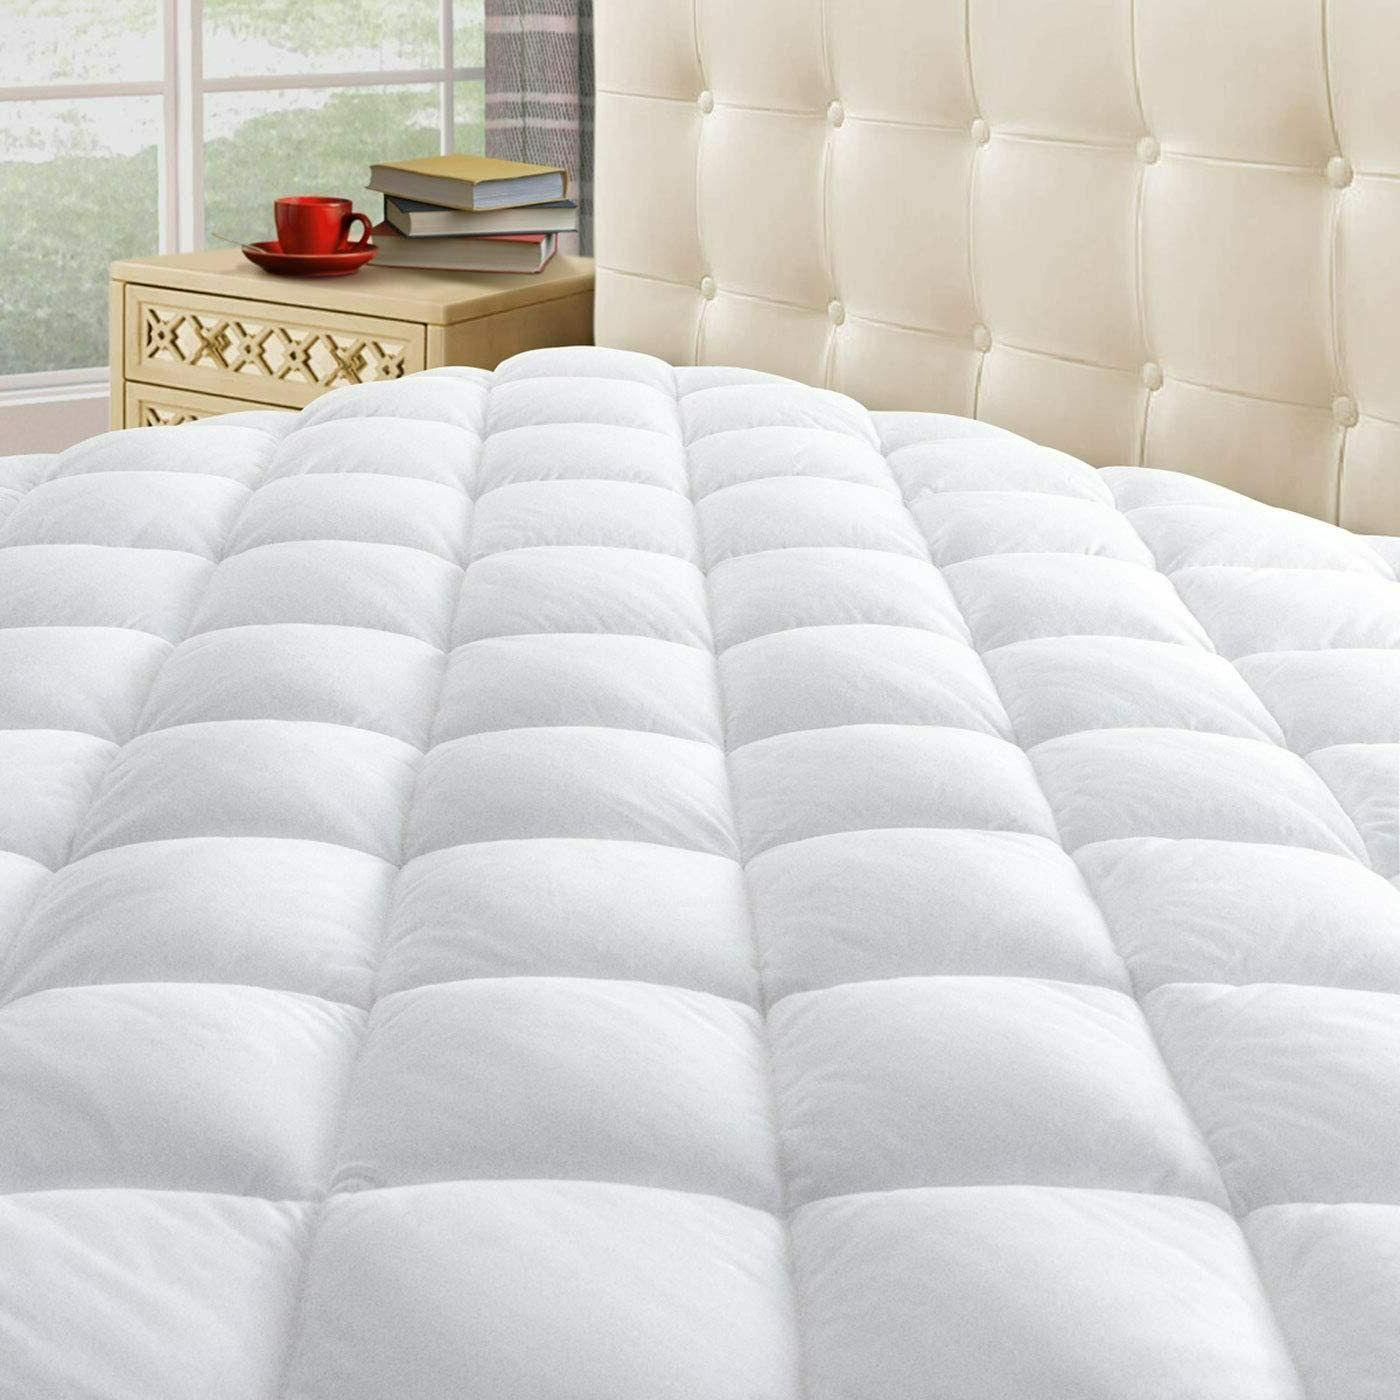 king size mattress pad cover memory foam